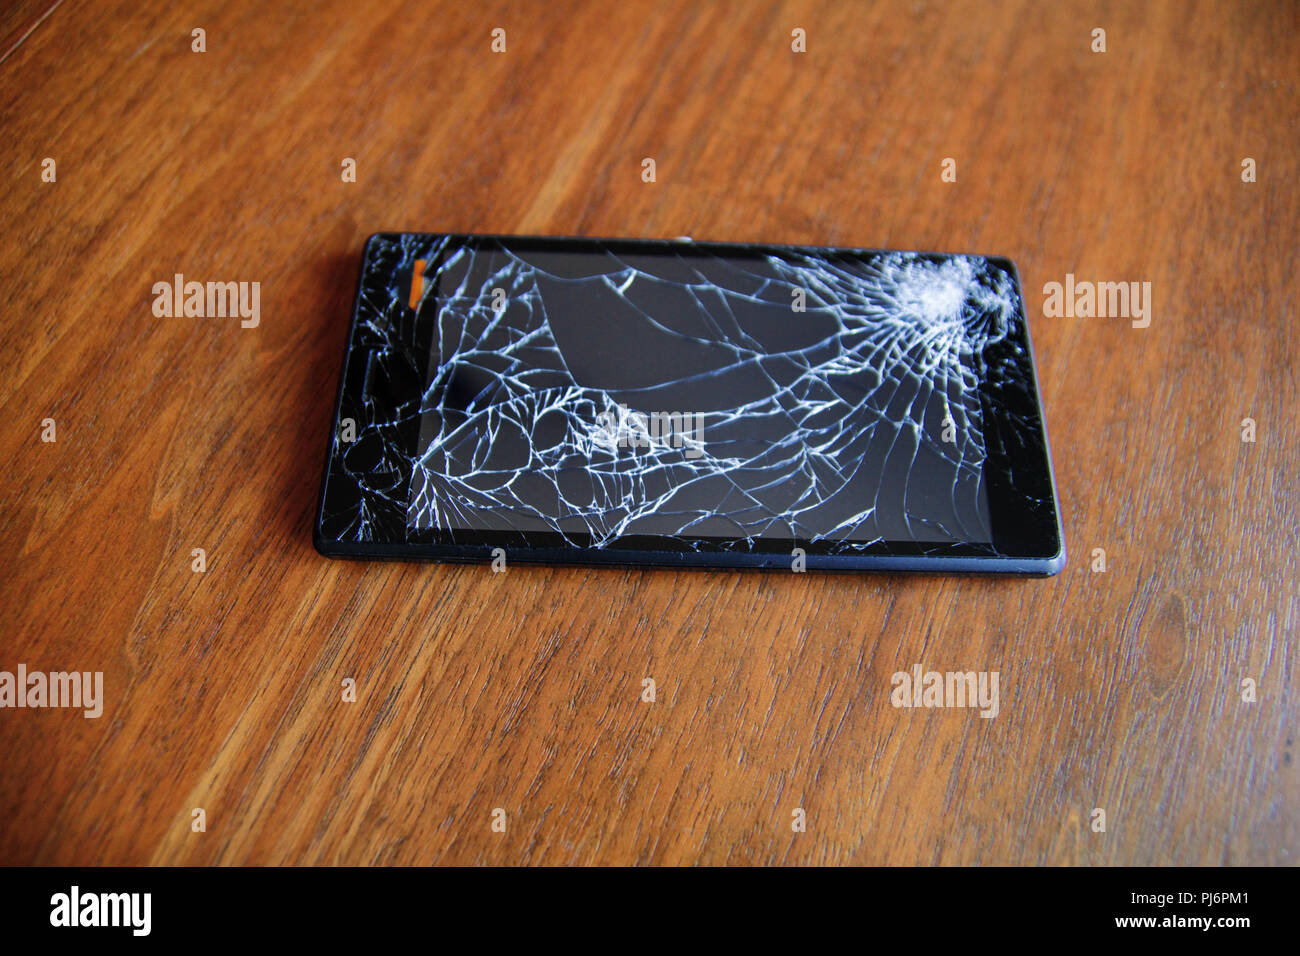 Modern mobile smart phone display with broken cracked glass screen on a wooden table, close up. - Stock Image